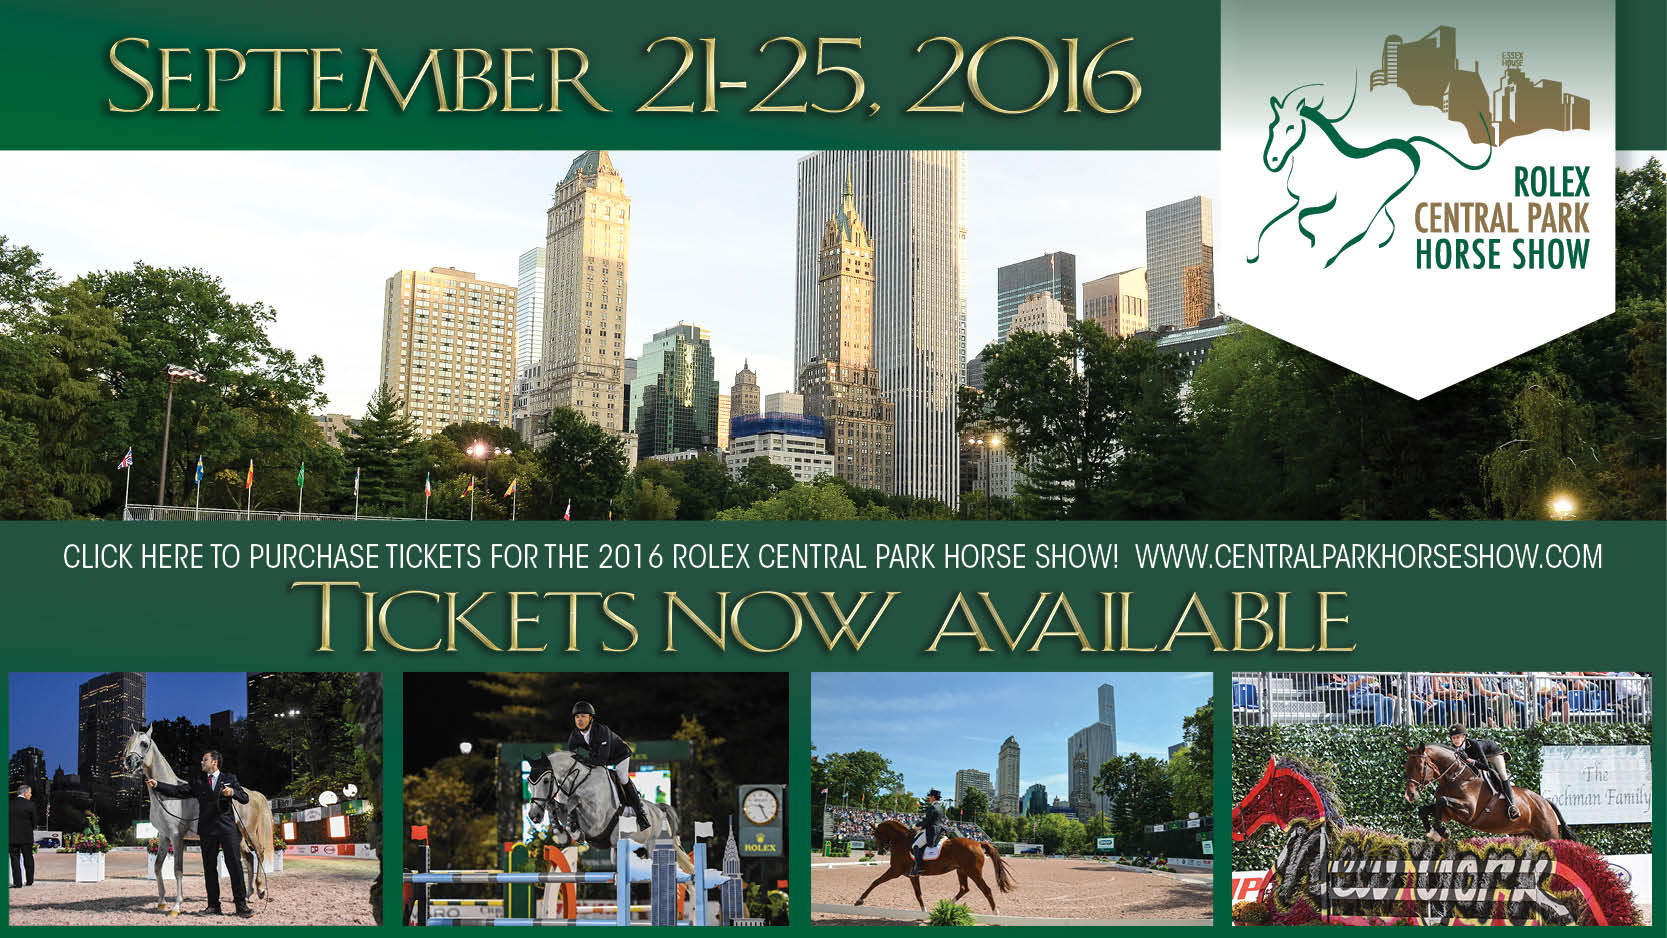 Tickets For Rolex Central Park Horse Show On Sale Now